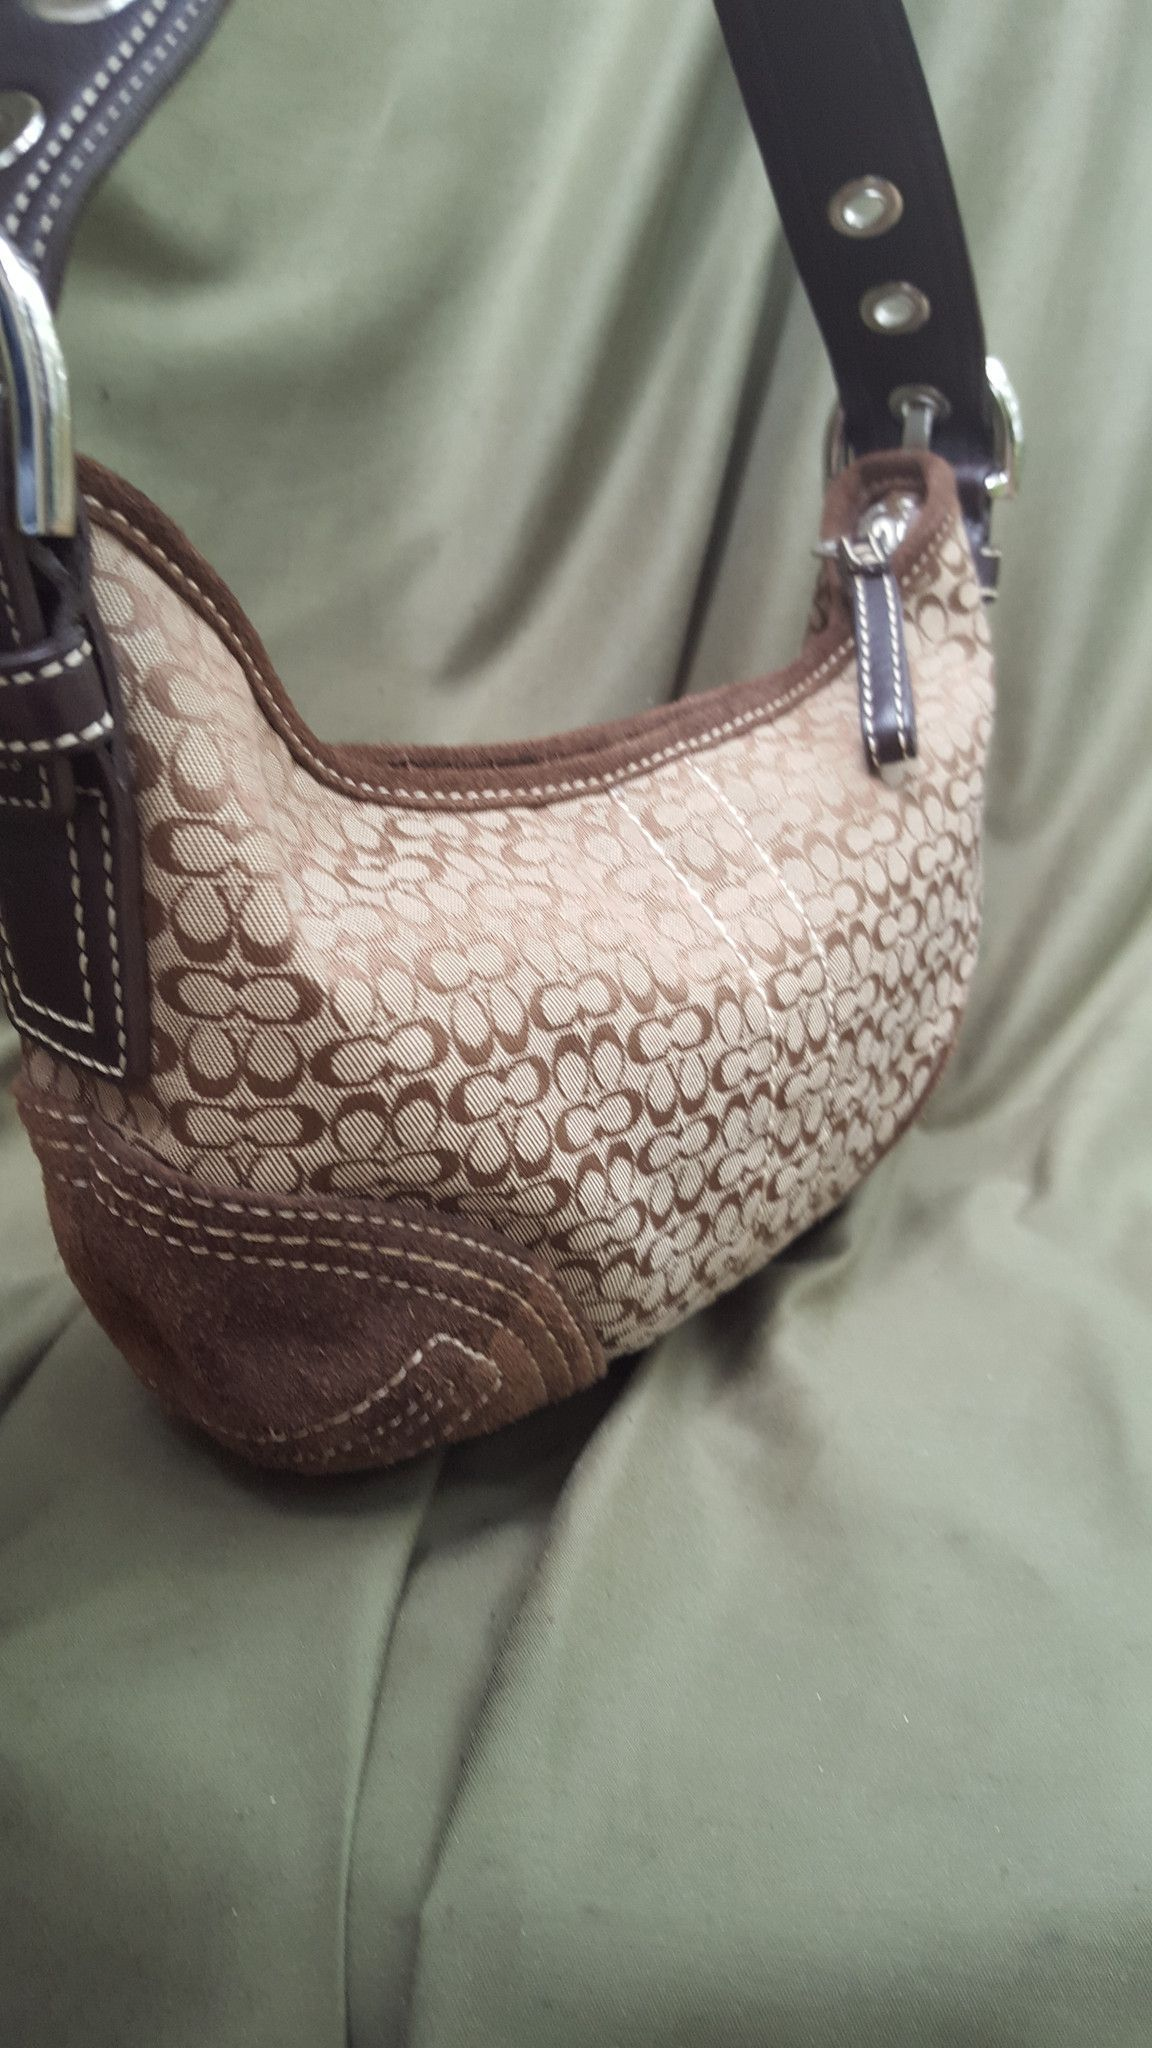 0227180fea97 Brown Coach handbag with signature Coach logo print and brown leather trim  and handle Lining is like new Gently loved and in great condition FREE  DOMESTIC ...